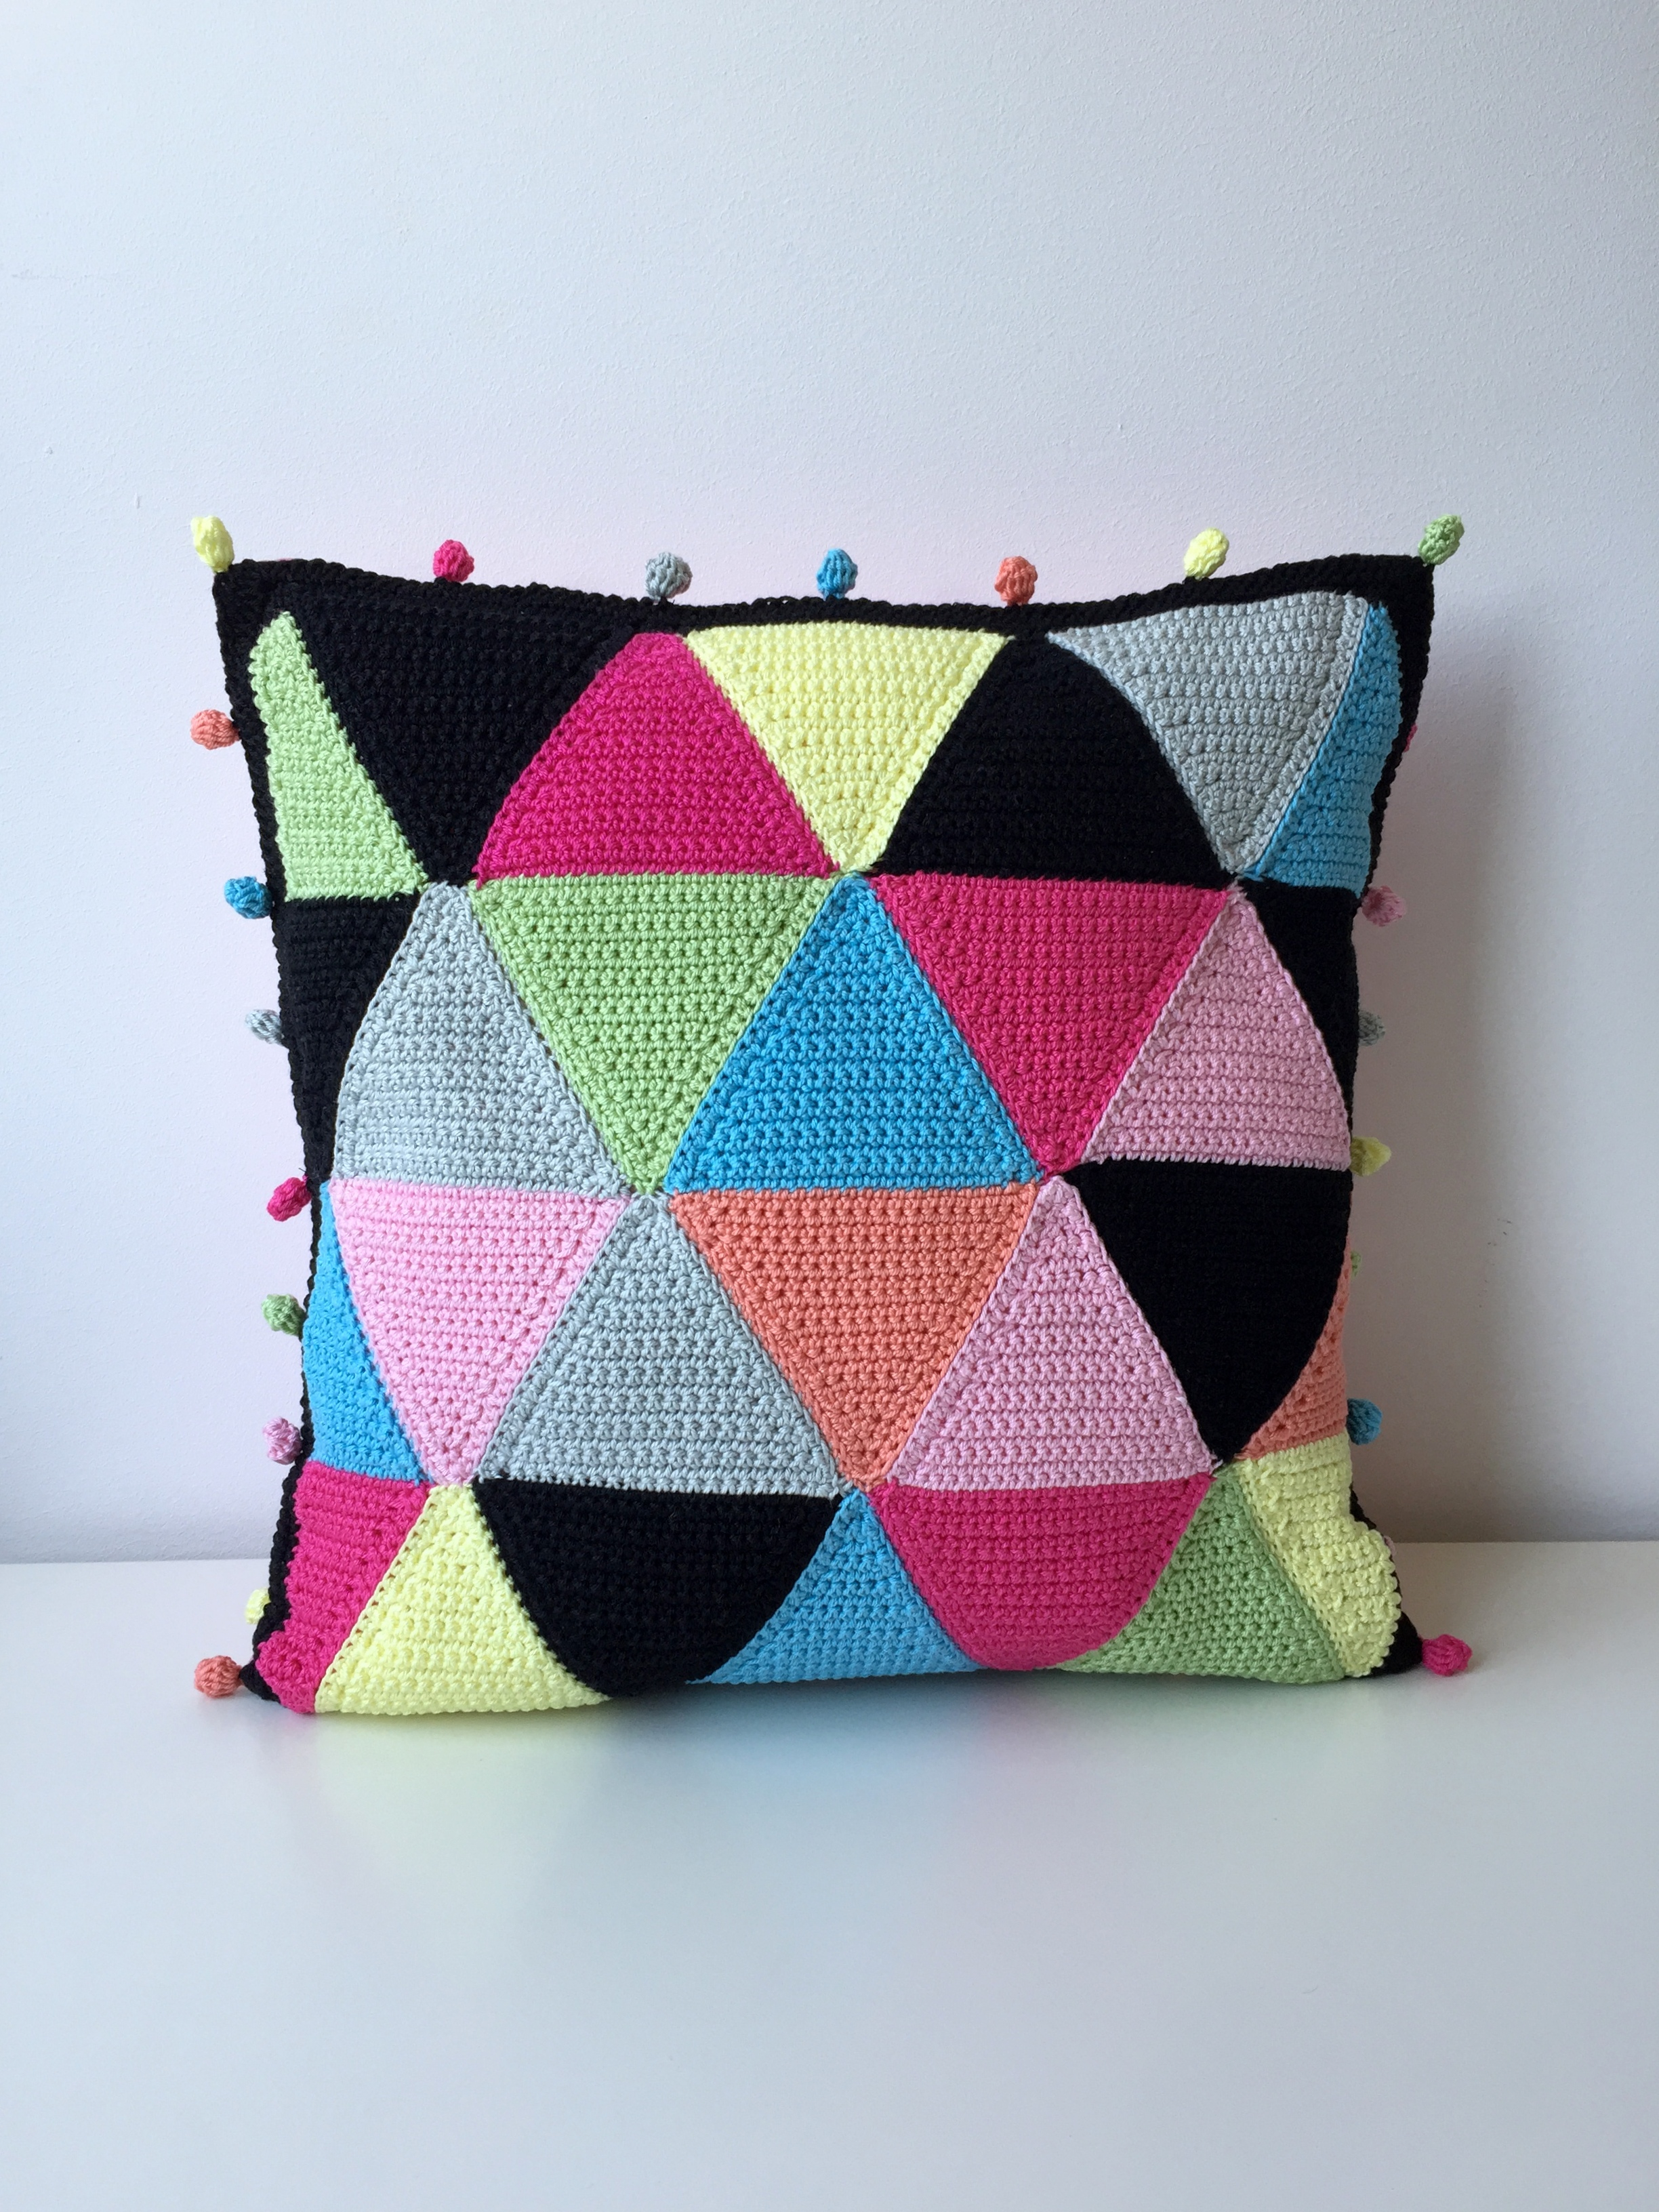 maRRose - CCC - The Candy Triangle Cushion-03